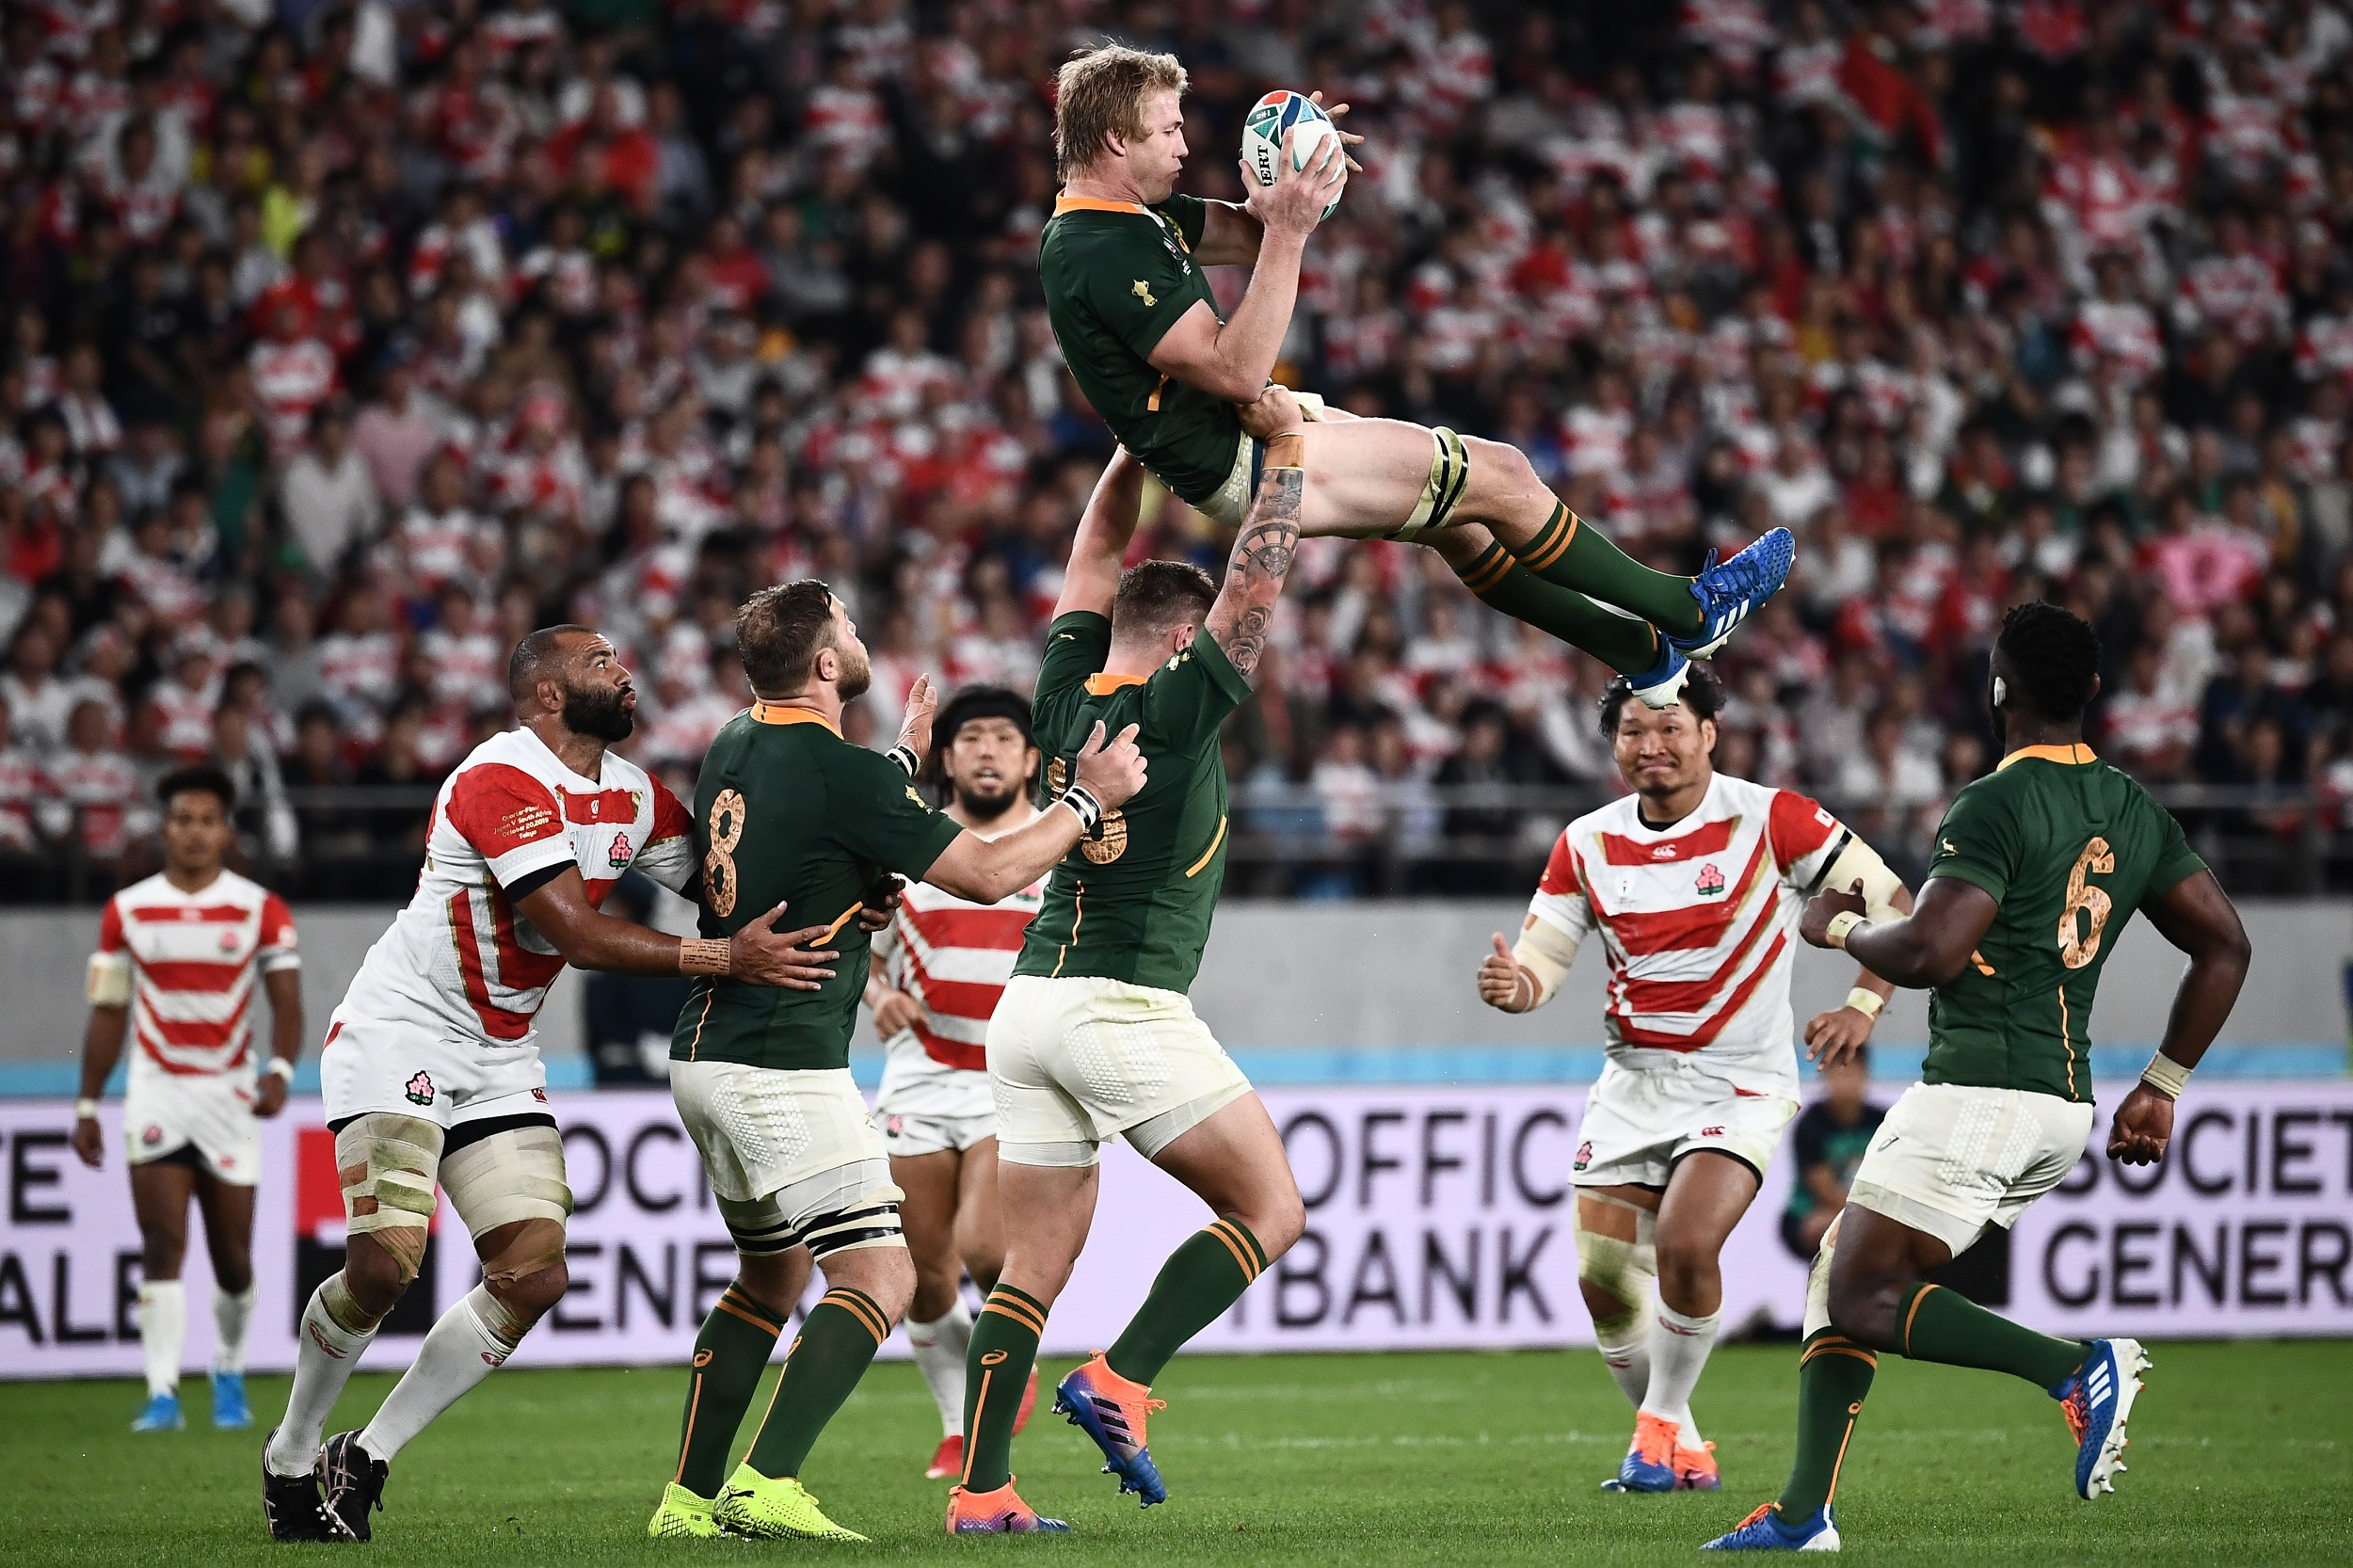 South Africa's flanker Pieter-Steph Du Toit (up) is lifted to catch the ball during the Japan 2019 Rugby World Cup quarter-final match between Japan and South Africa.